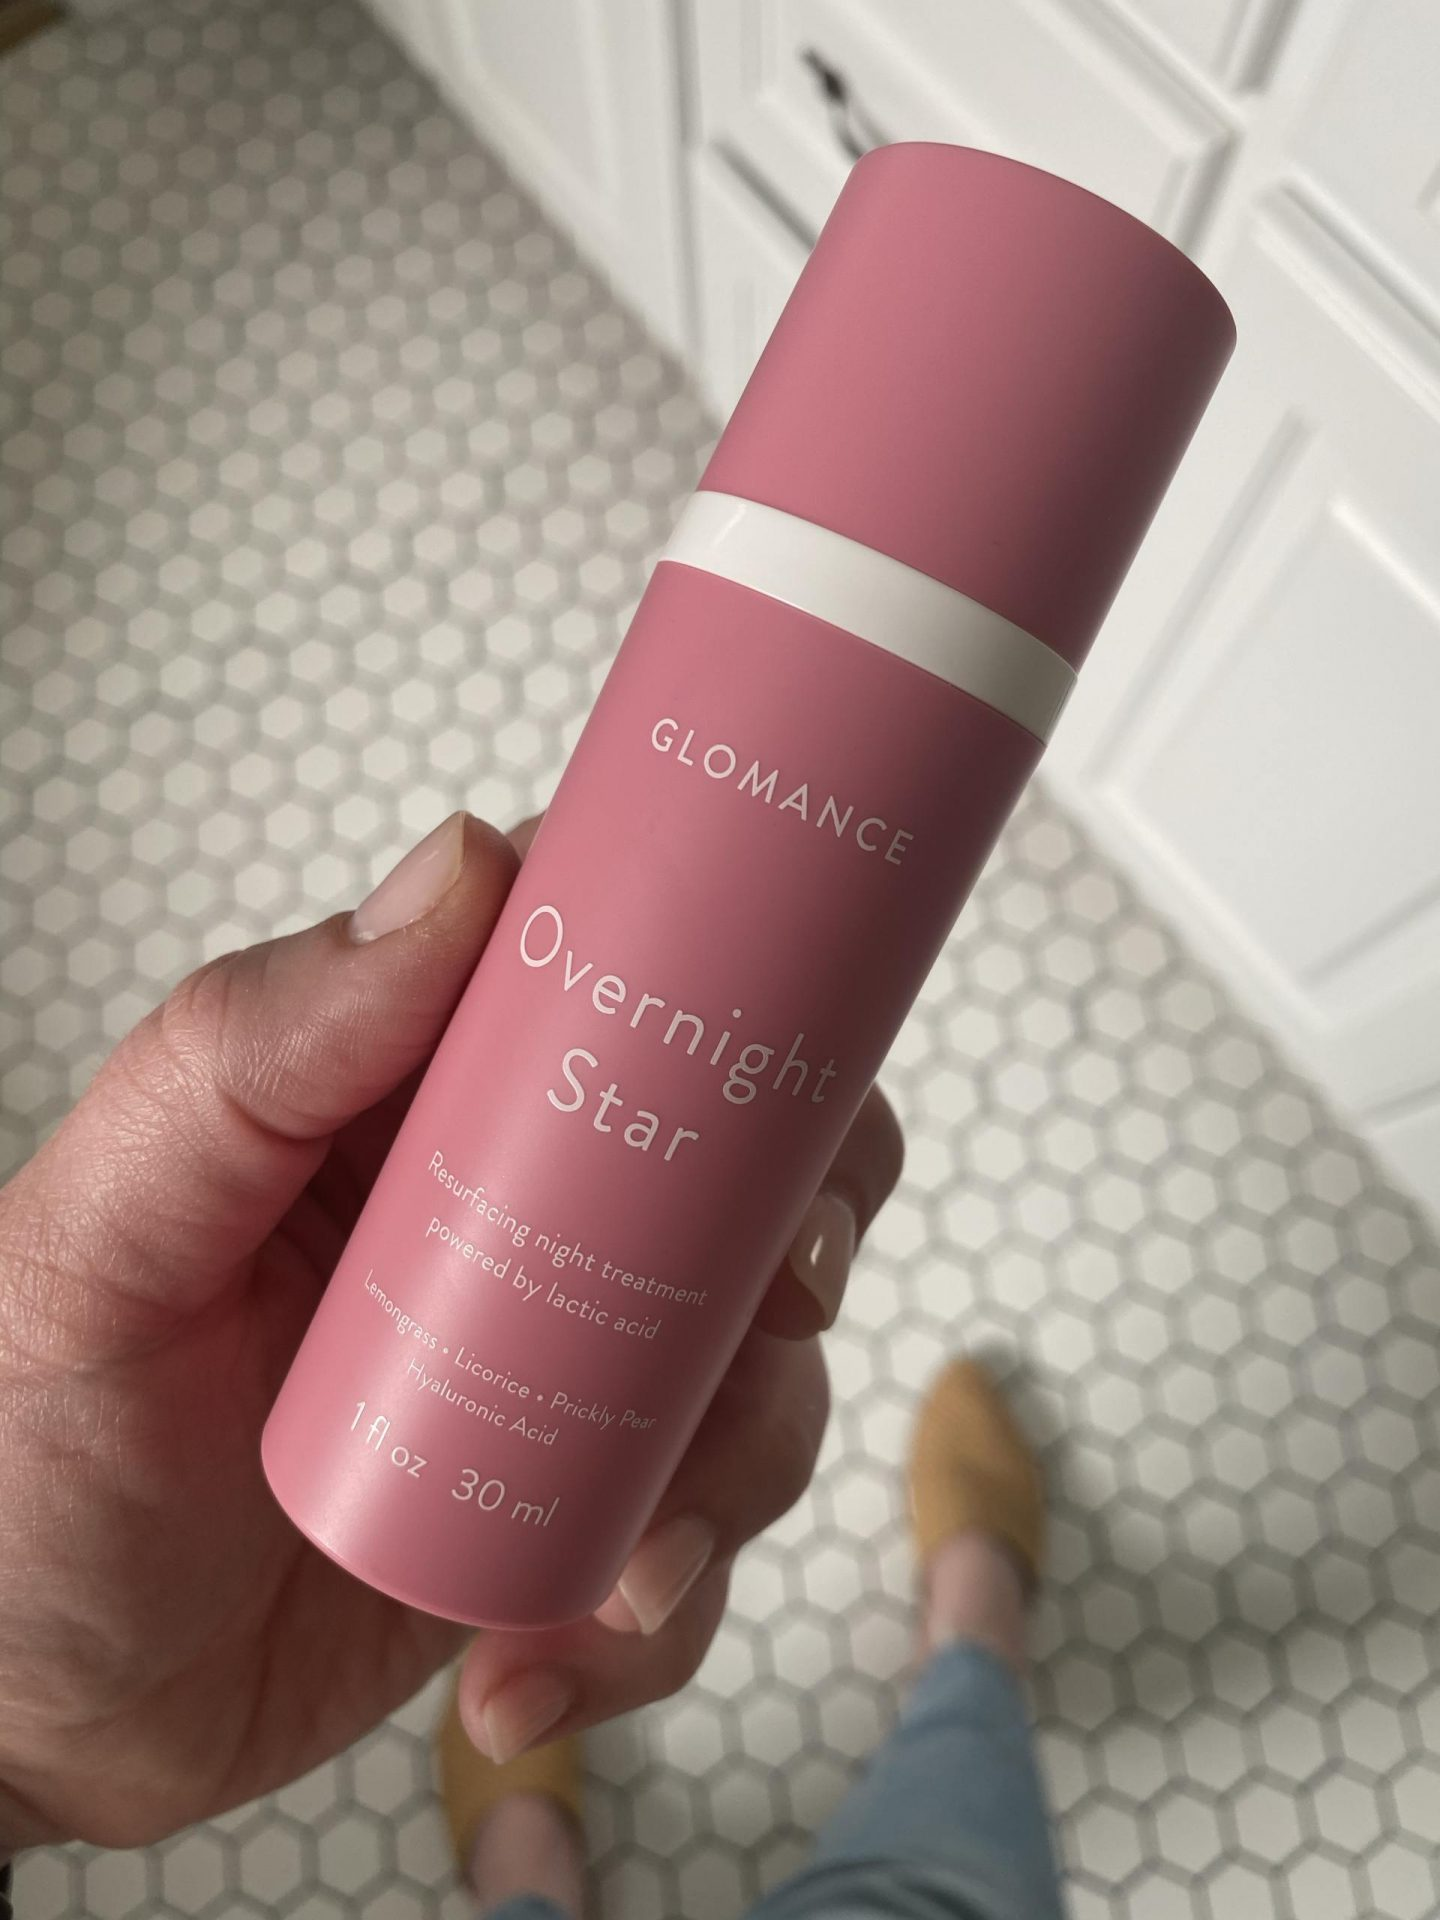 NC blogger Rebecca Lately is sharing her Glomance Serum review.  This gentle lactic acid exfoliator is used 2-3 times a week.